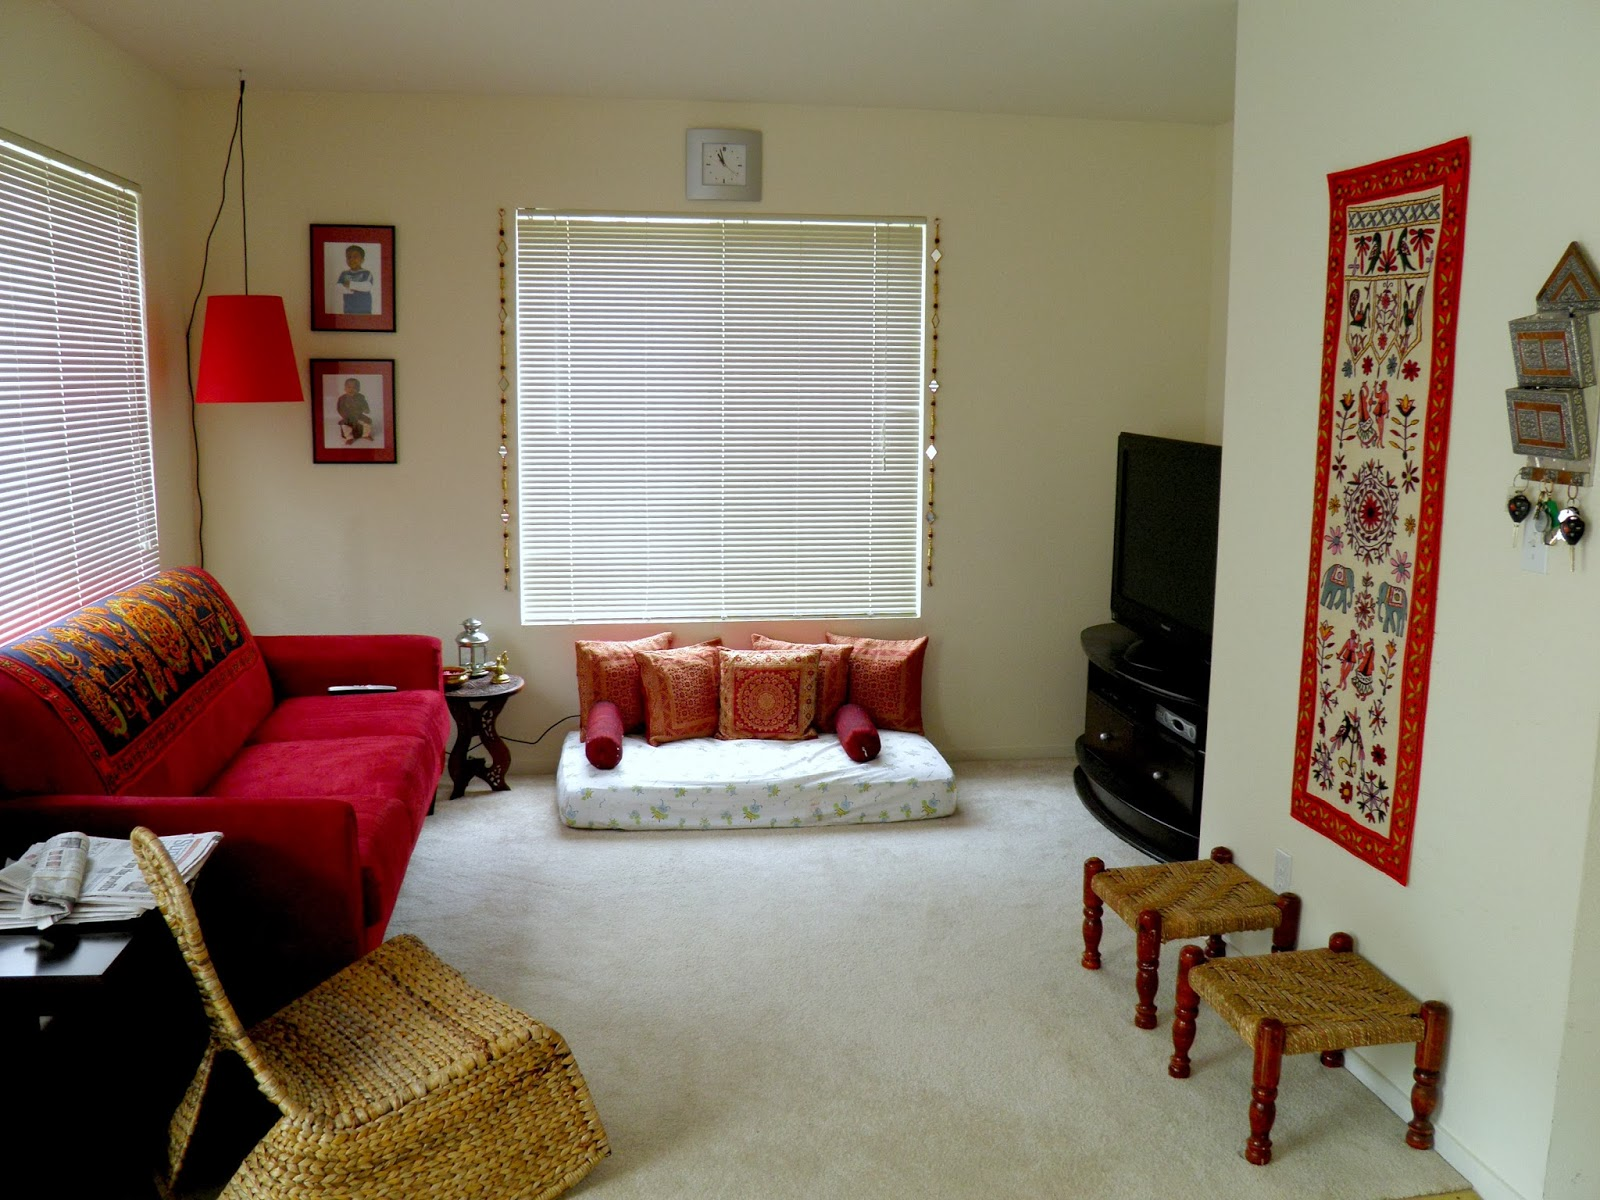 Weekend tweaks changes in the family room for Living room decorating ideas indian style